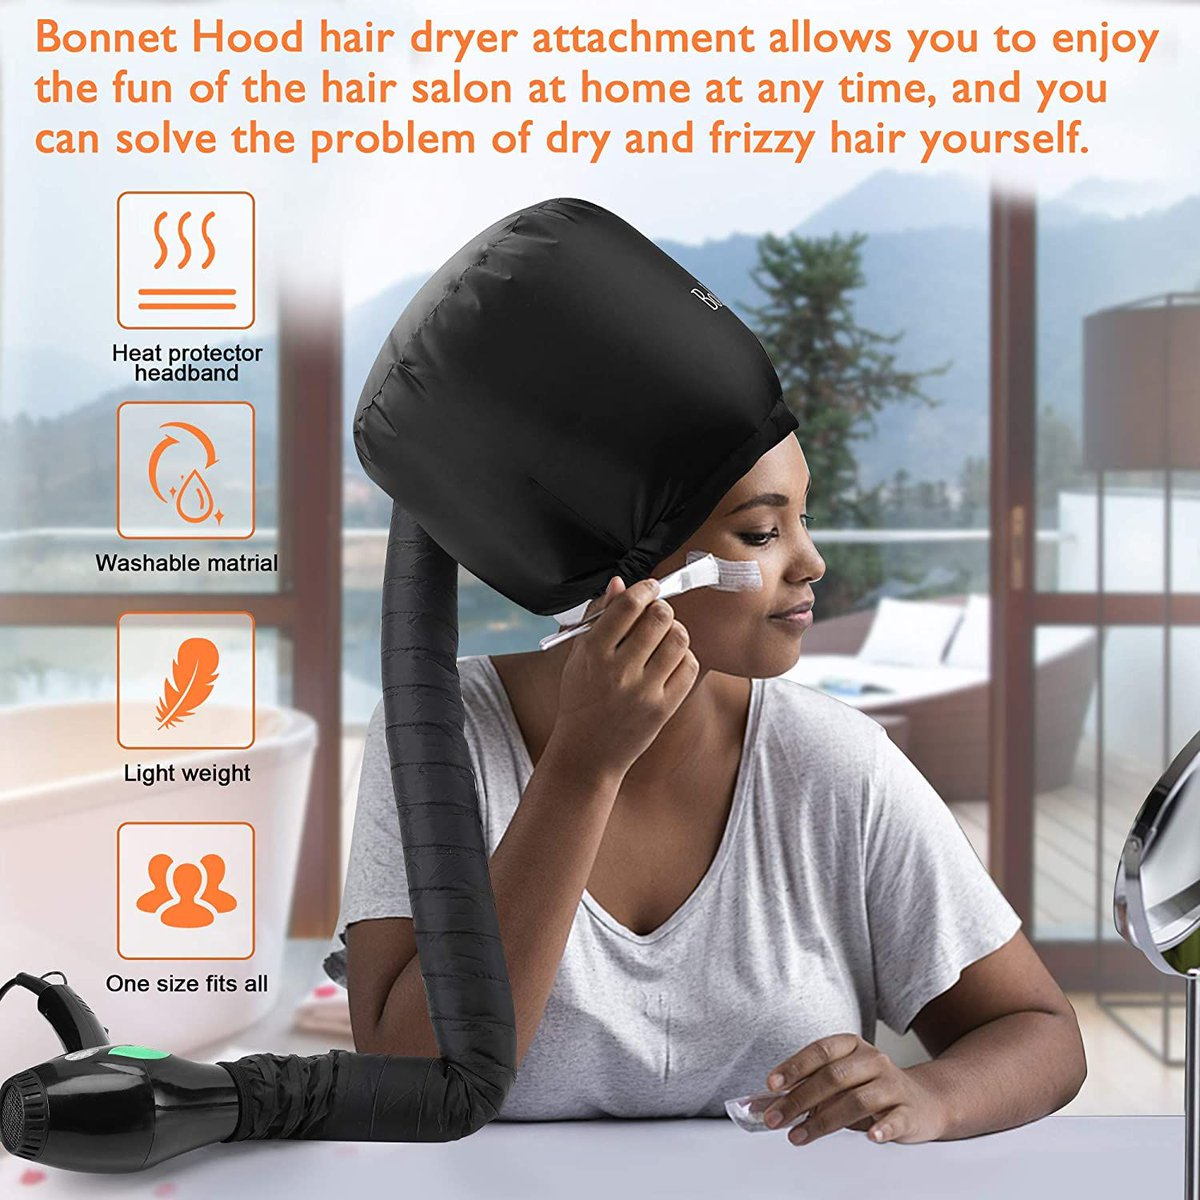 ad: Bonnet Hair Dryer  Clip the coupon on page  Link0 Link0